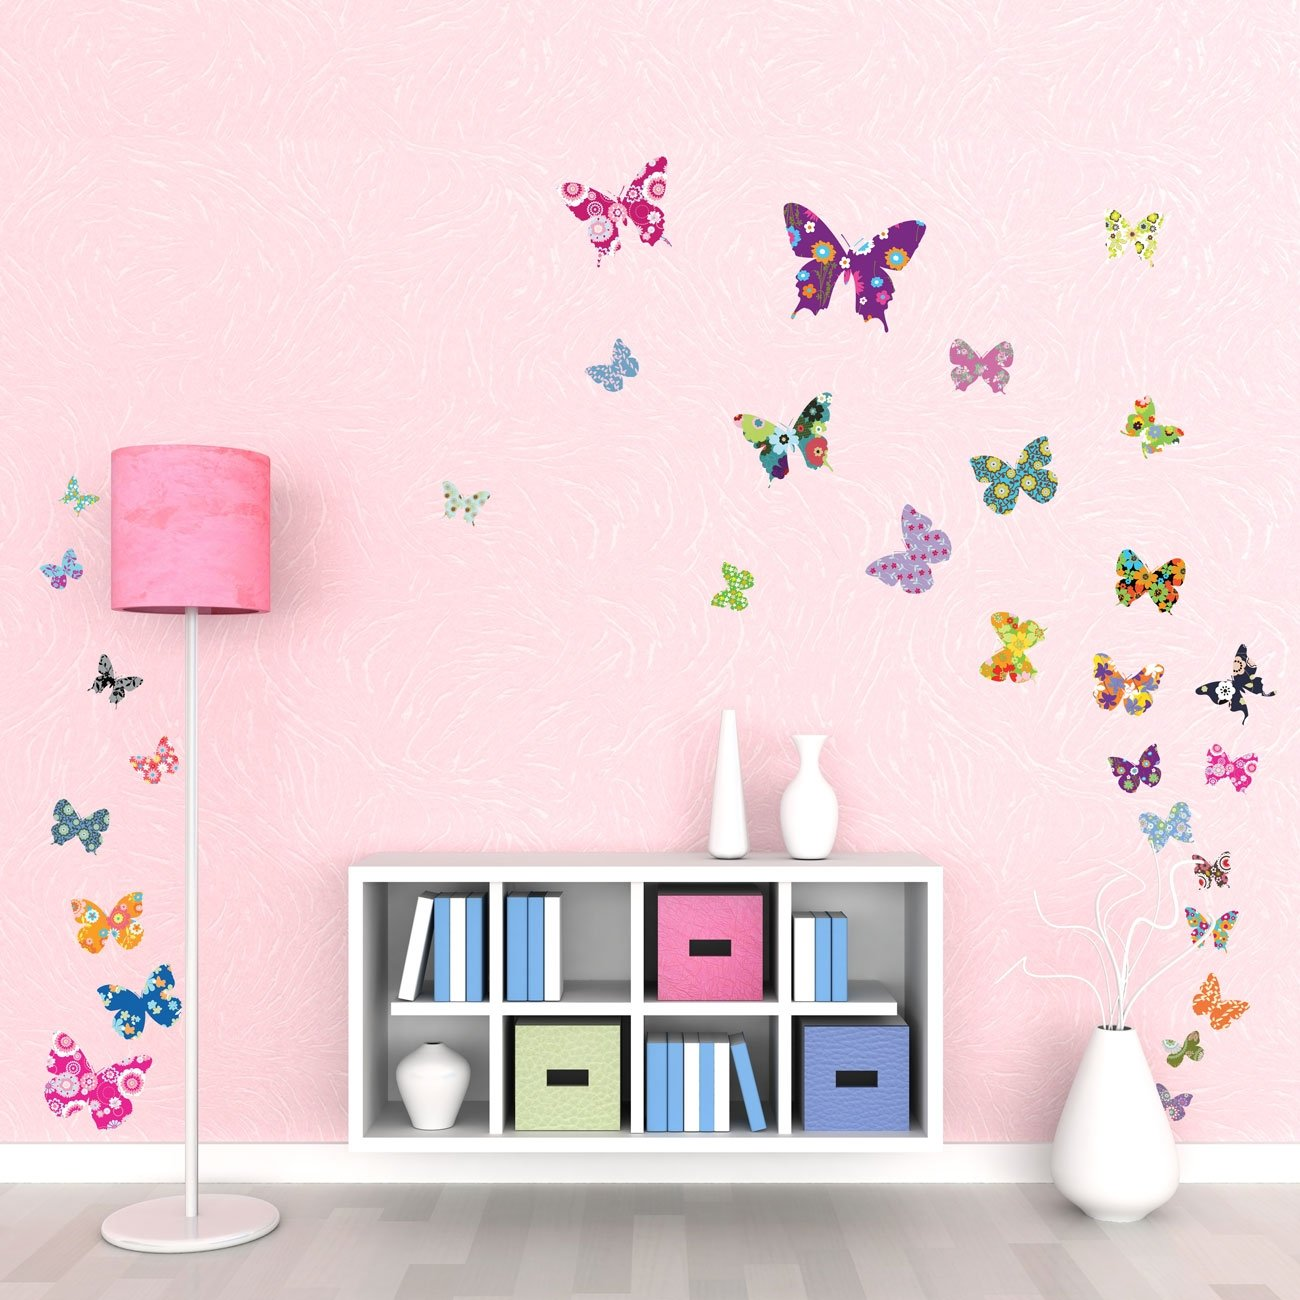 Details about Wall Stickers Girls Bedroom Colourful Butterflies Kids Wall  Decals Peel Stick